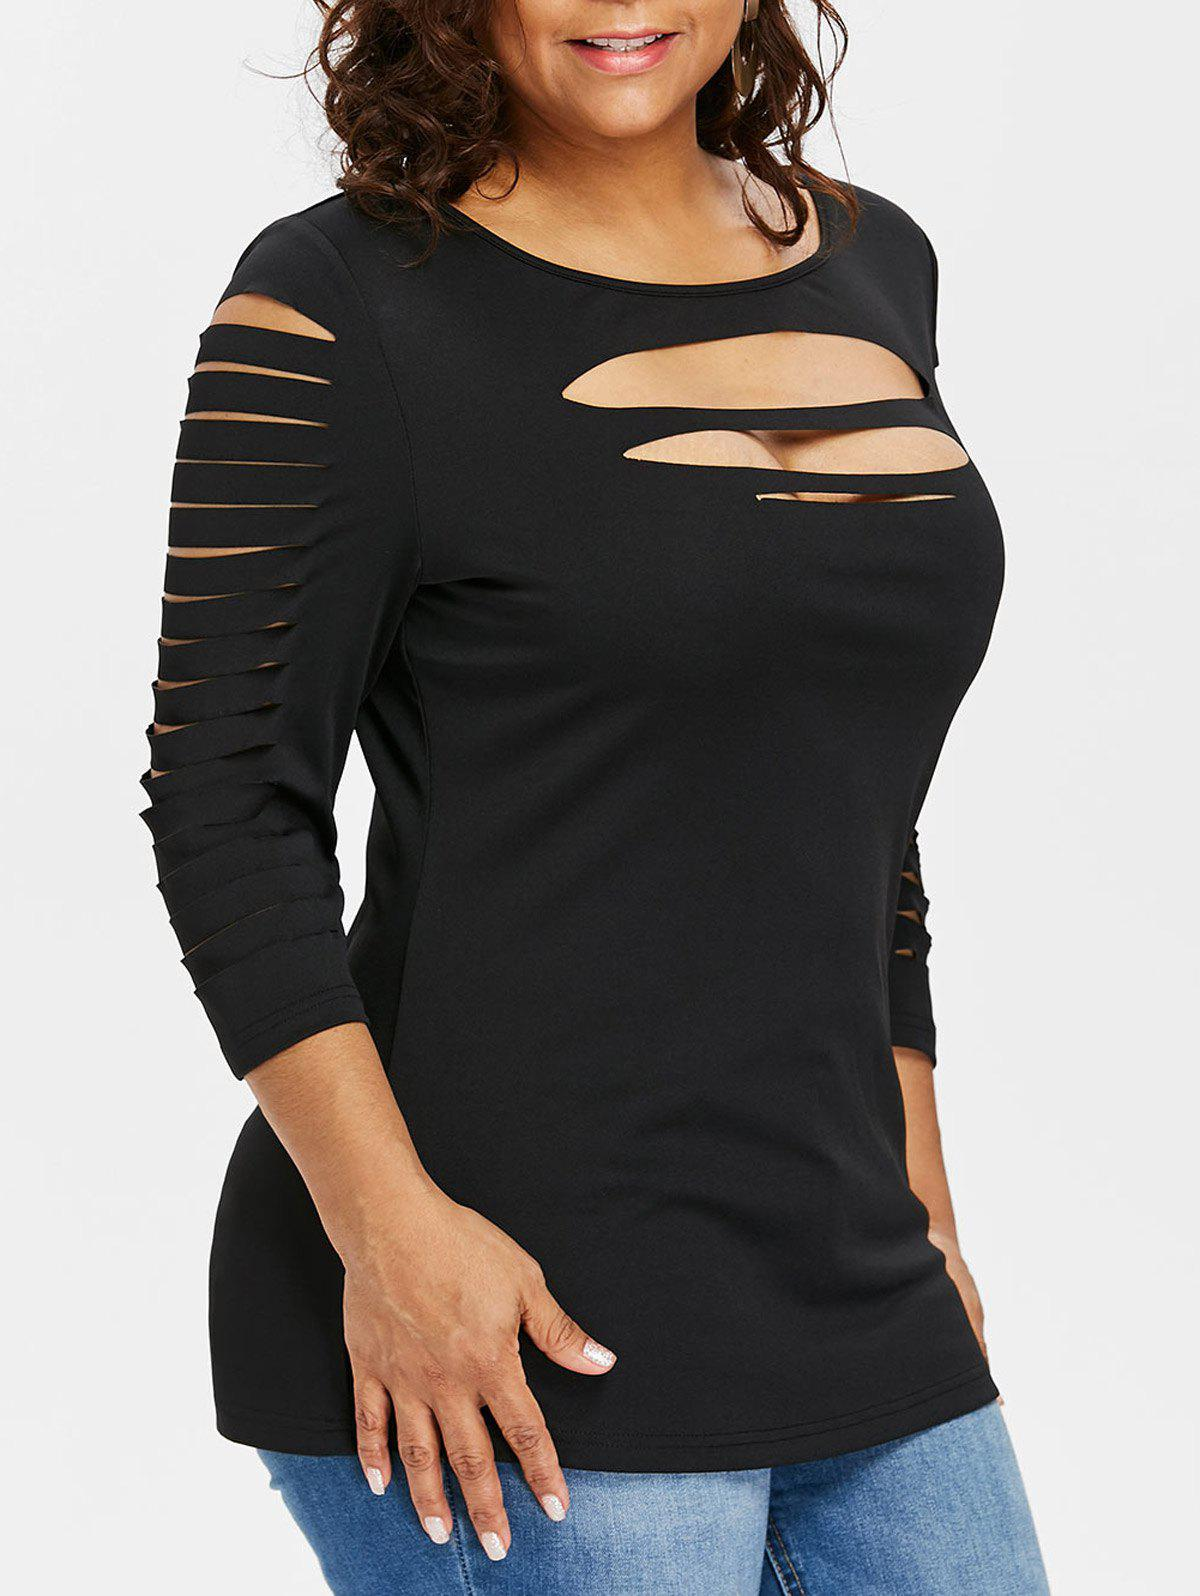 Shop Plus Size Three Quarter Sleeve Ripped T-shirt